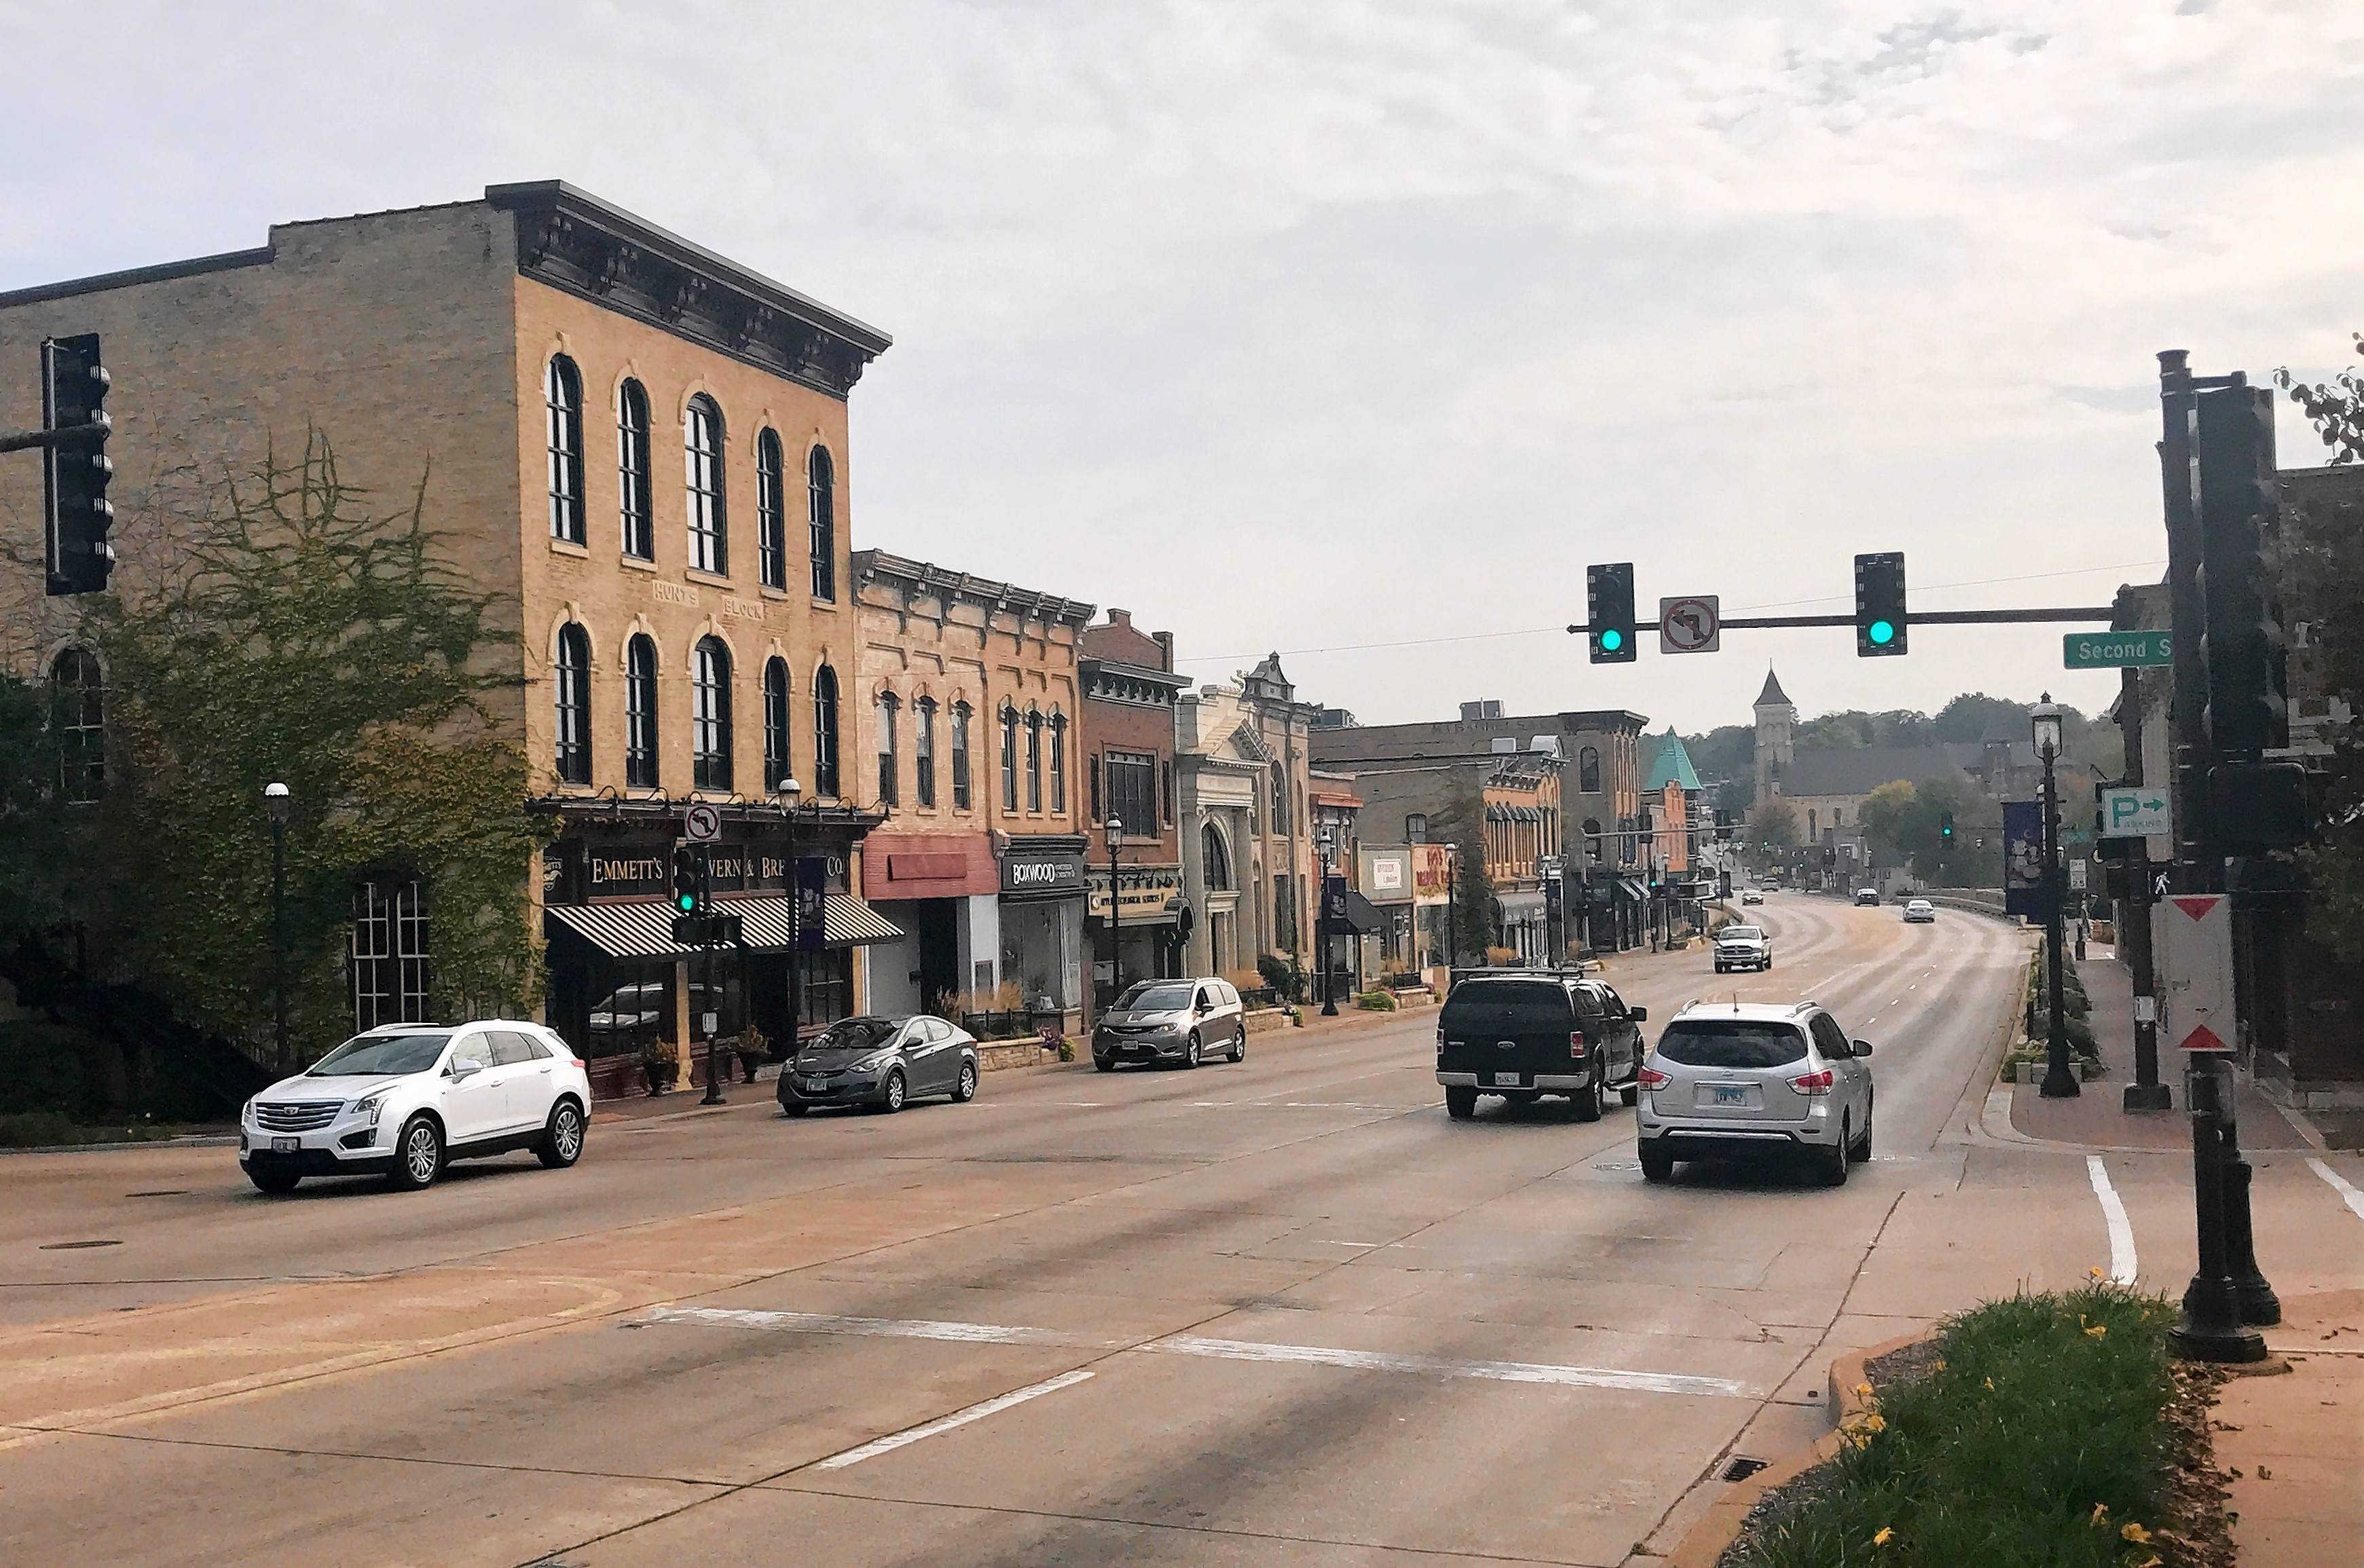 A tax increment financing district proposed in West Dundee could help fund downtown redevelopment projects and spur economic growth throughout the village, officials say.